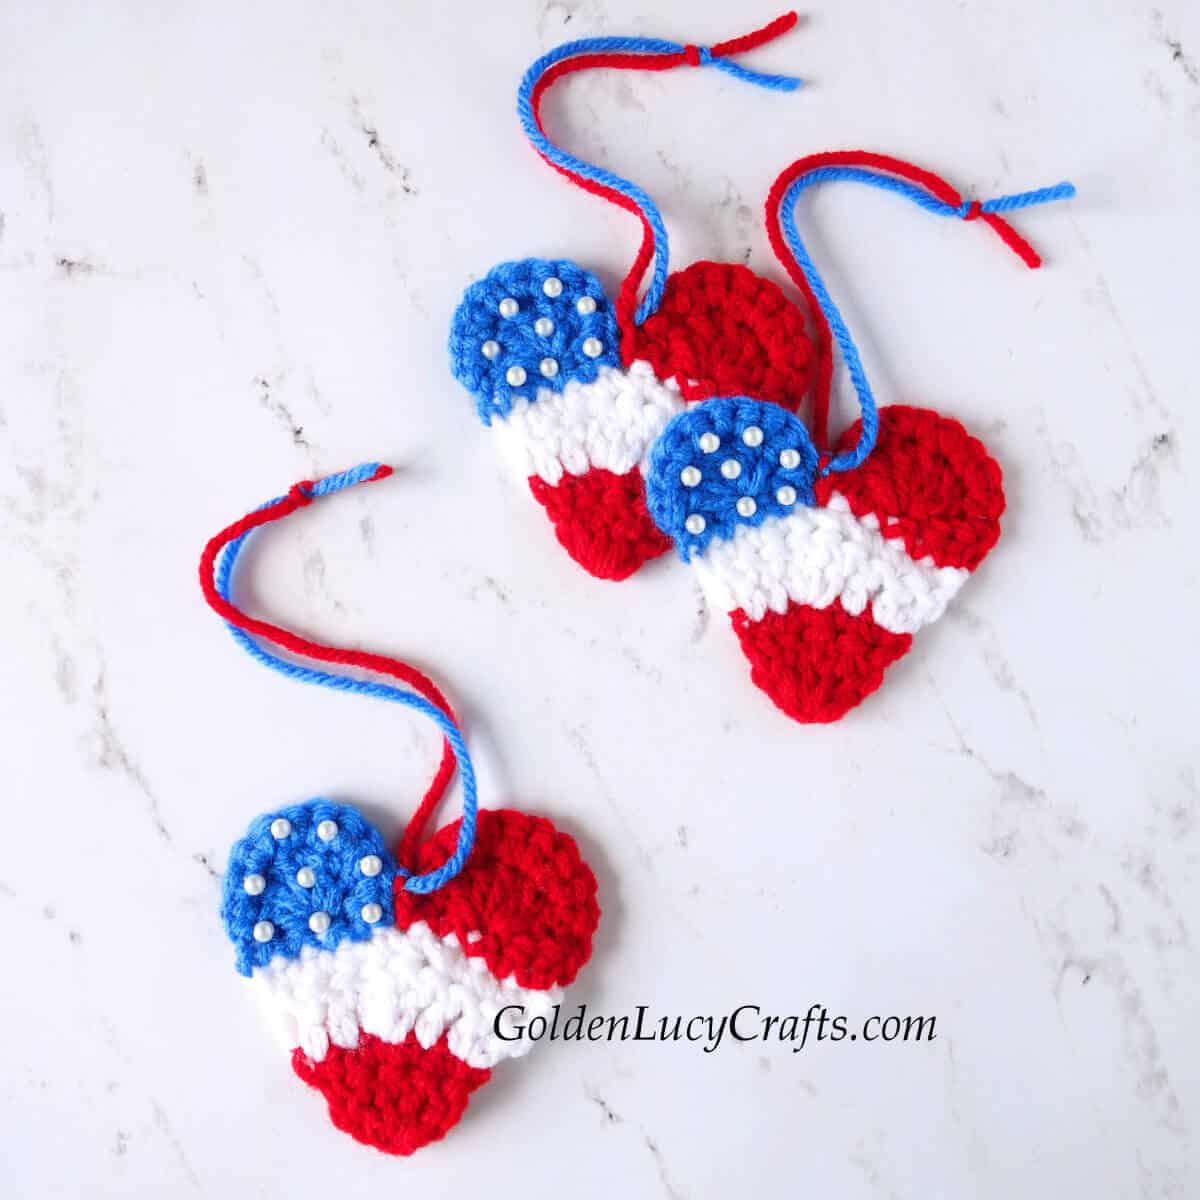 Three crocheted hearts in patriotic colors - red, white and blue.